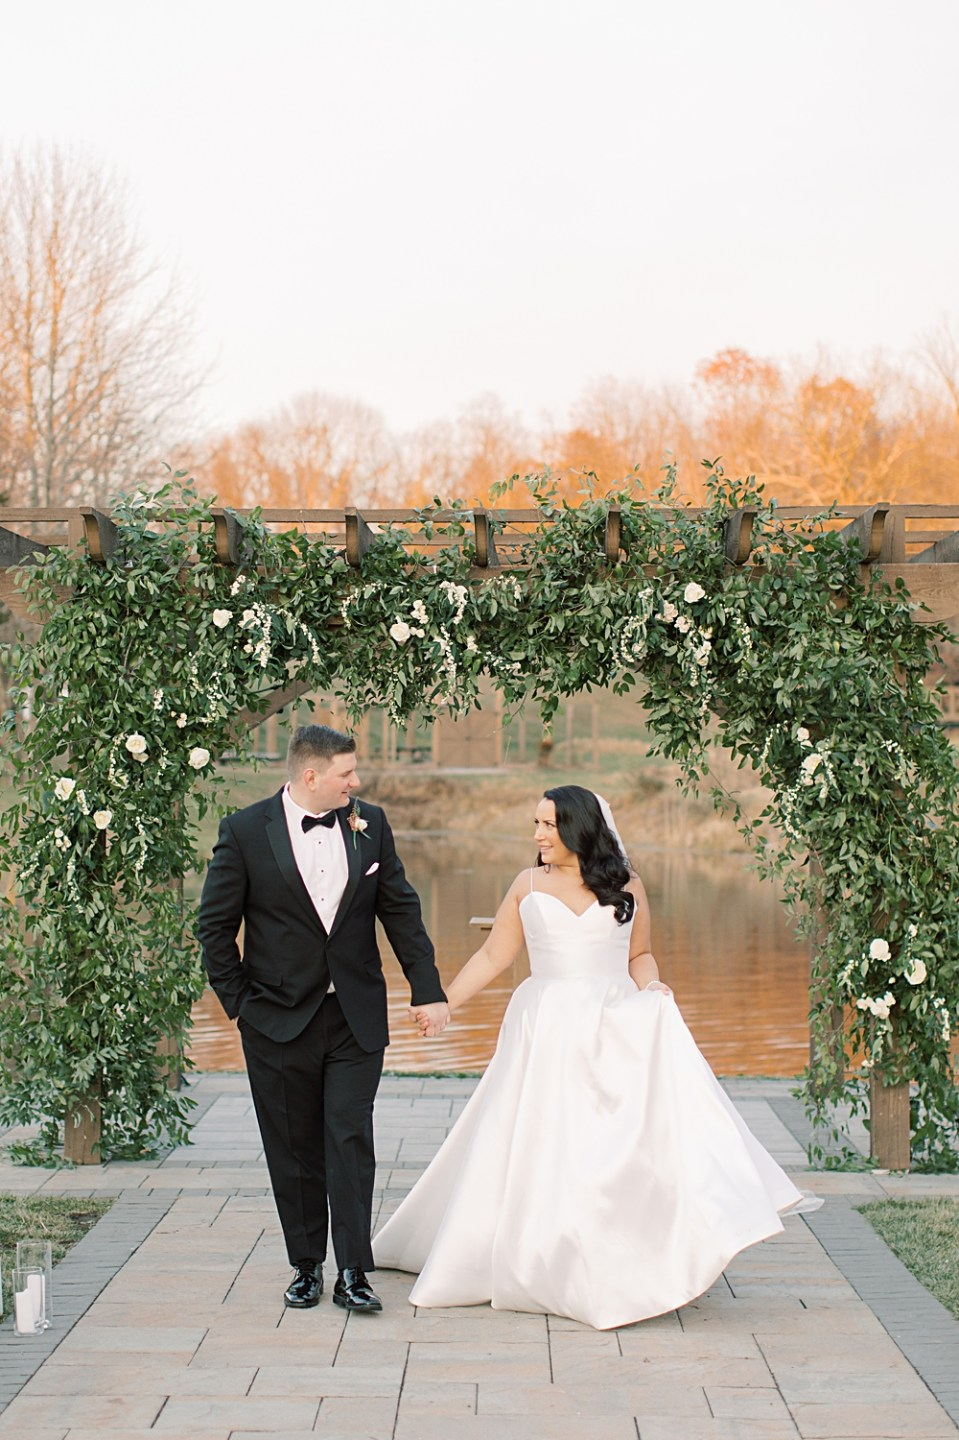 greenery wedding ceremony arch | new jersey wedding photographer sarah canning photography